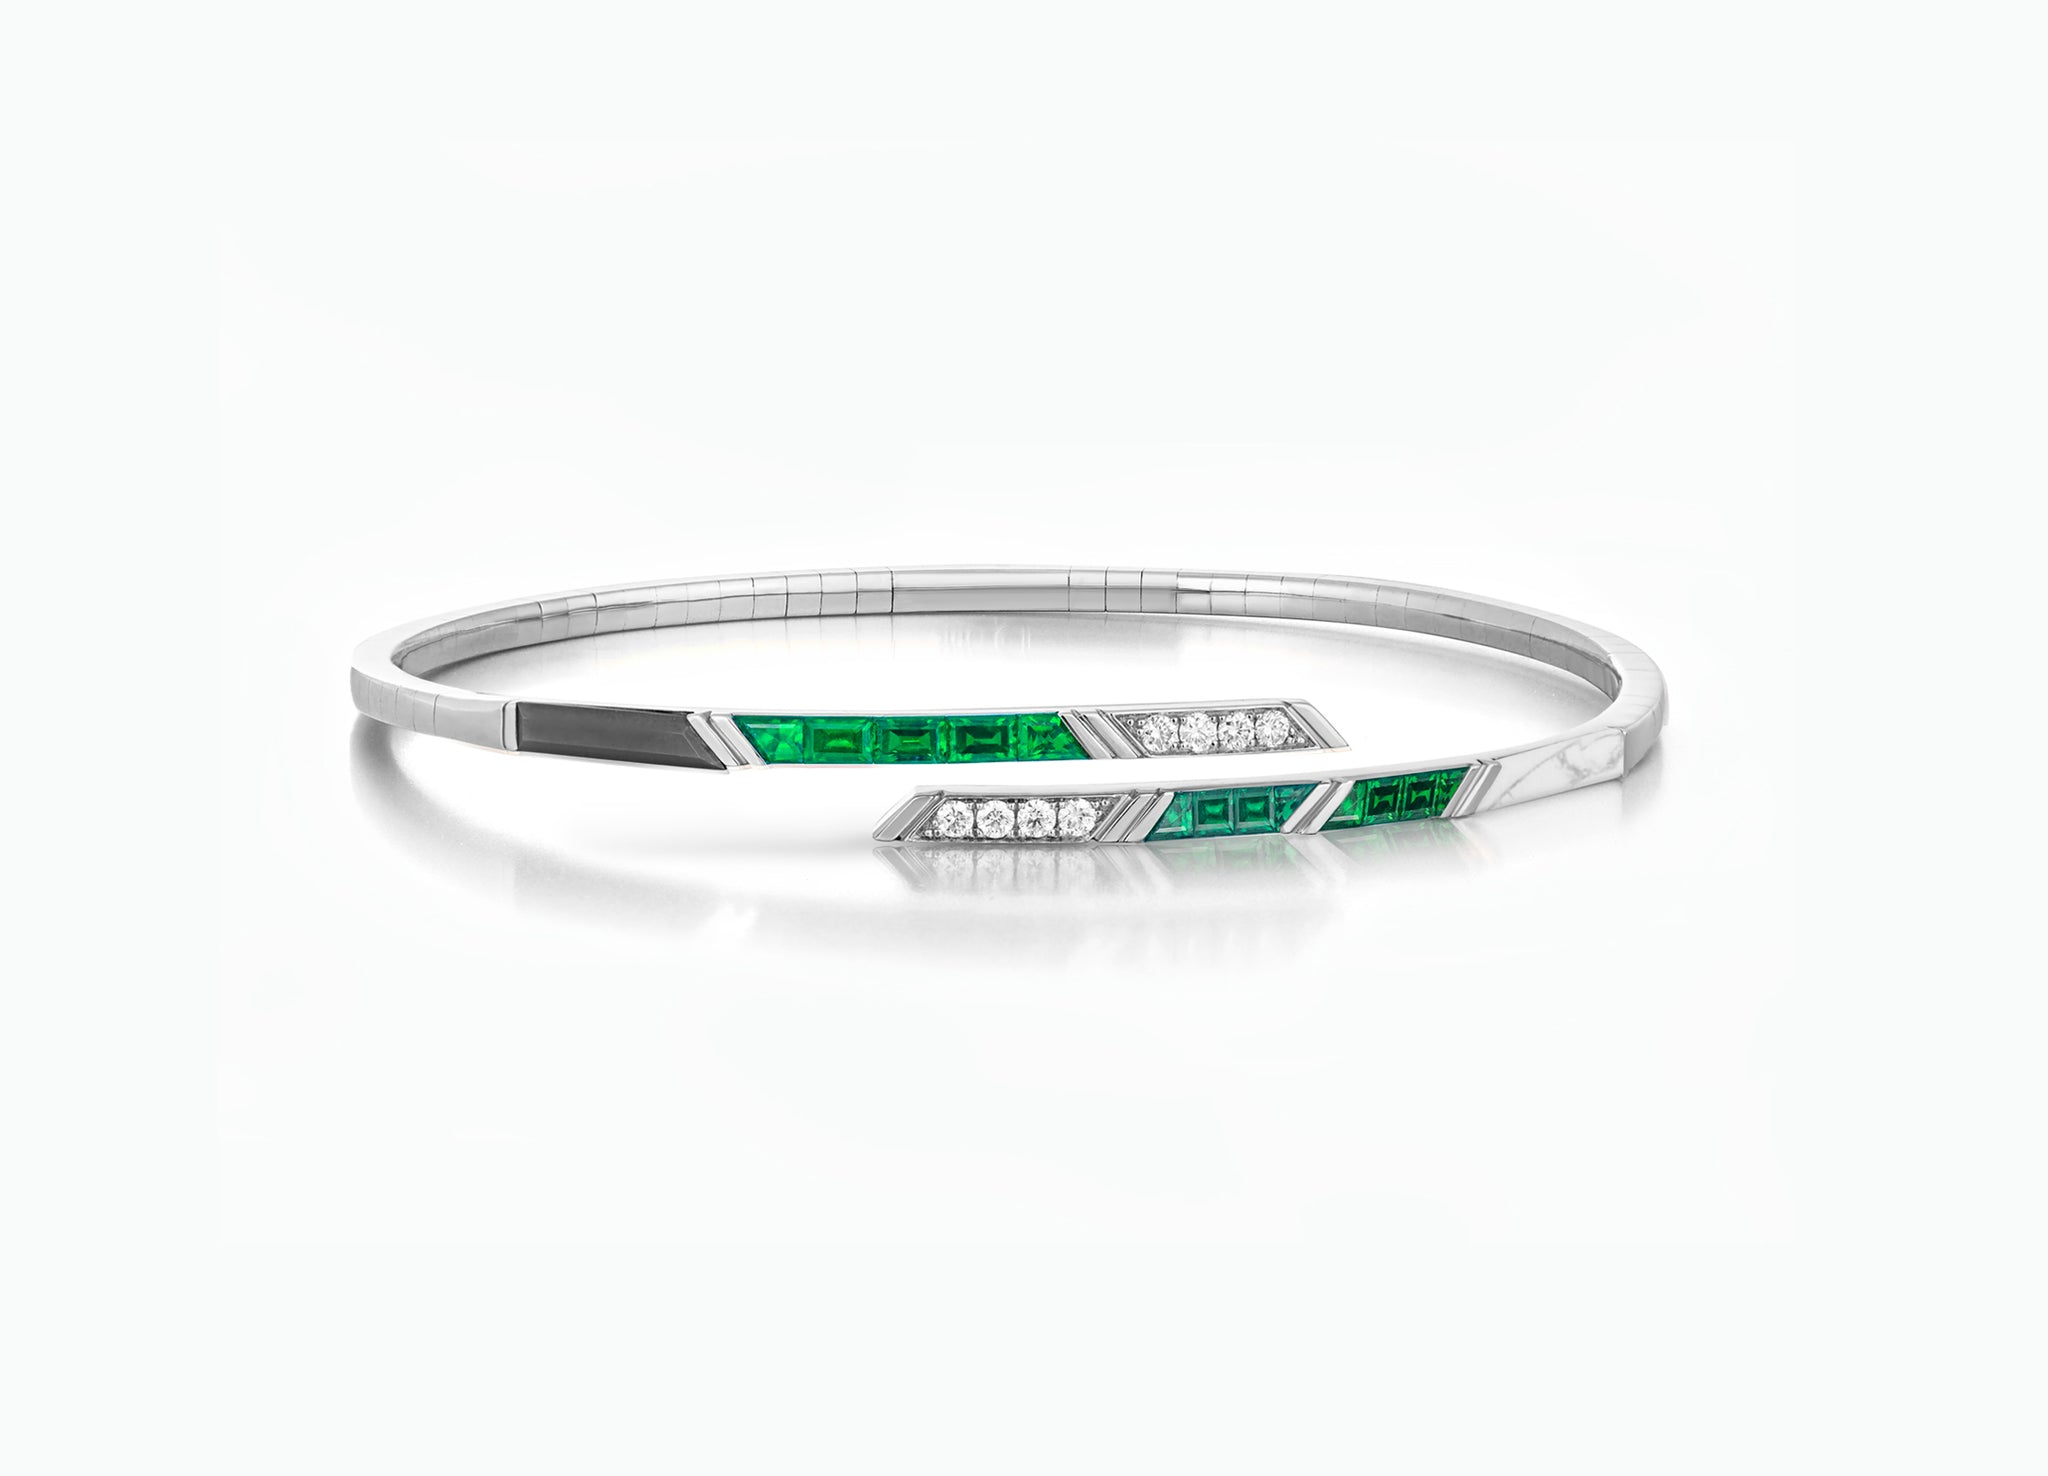 Art Deco bangle in 18K white gold with diamonds, emeralds and tsavorite garnets by Tomasz Donocik